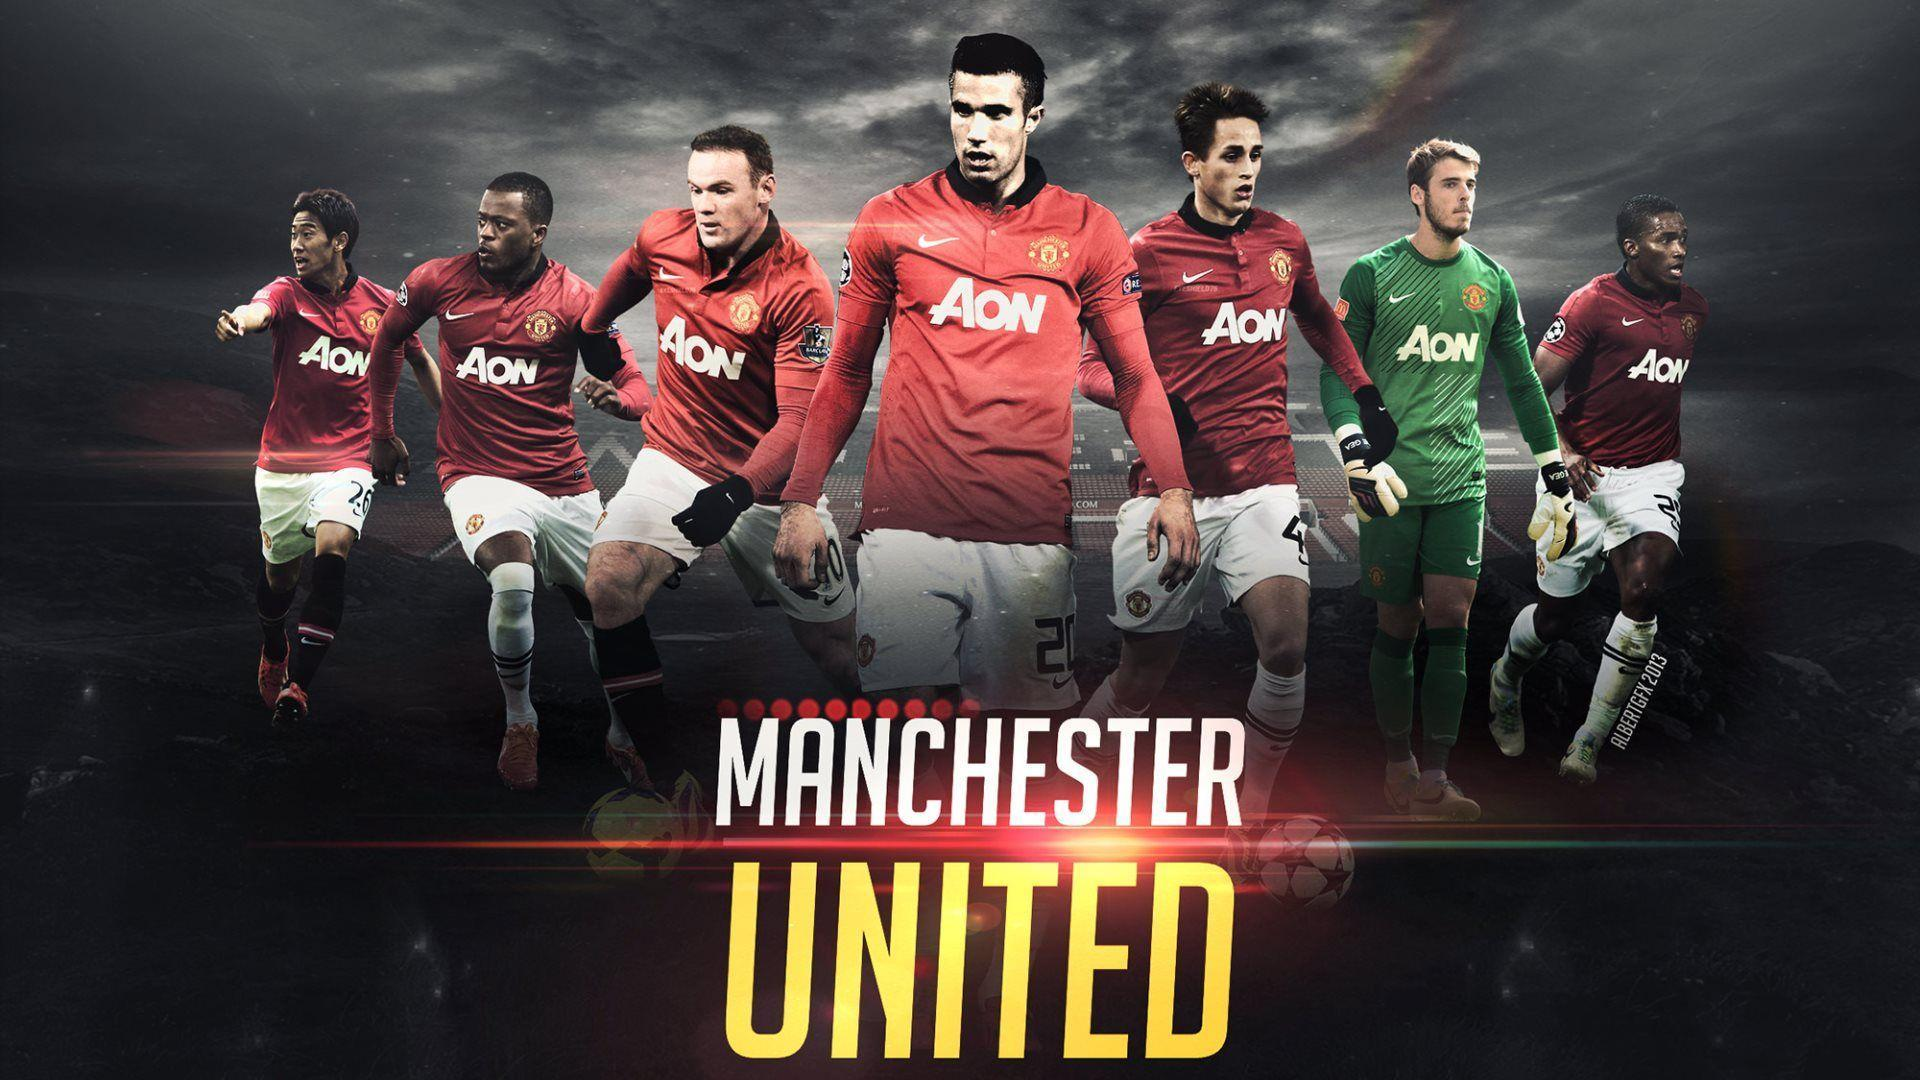 manchester united players wallpapers wallpaper cave manchester united players wallpapers